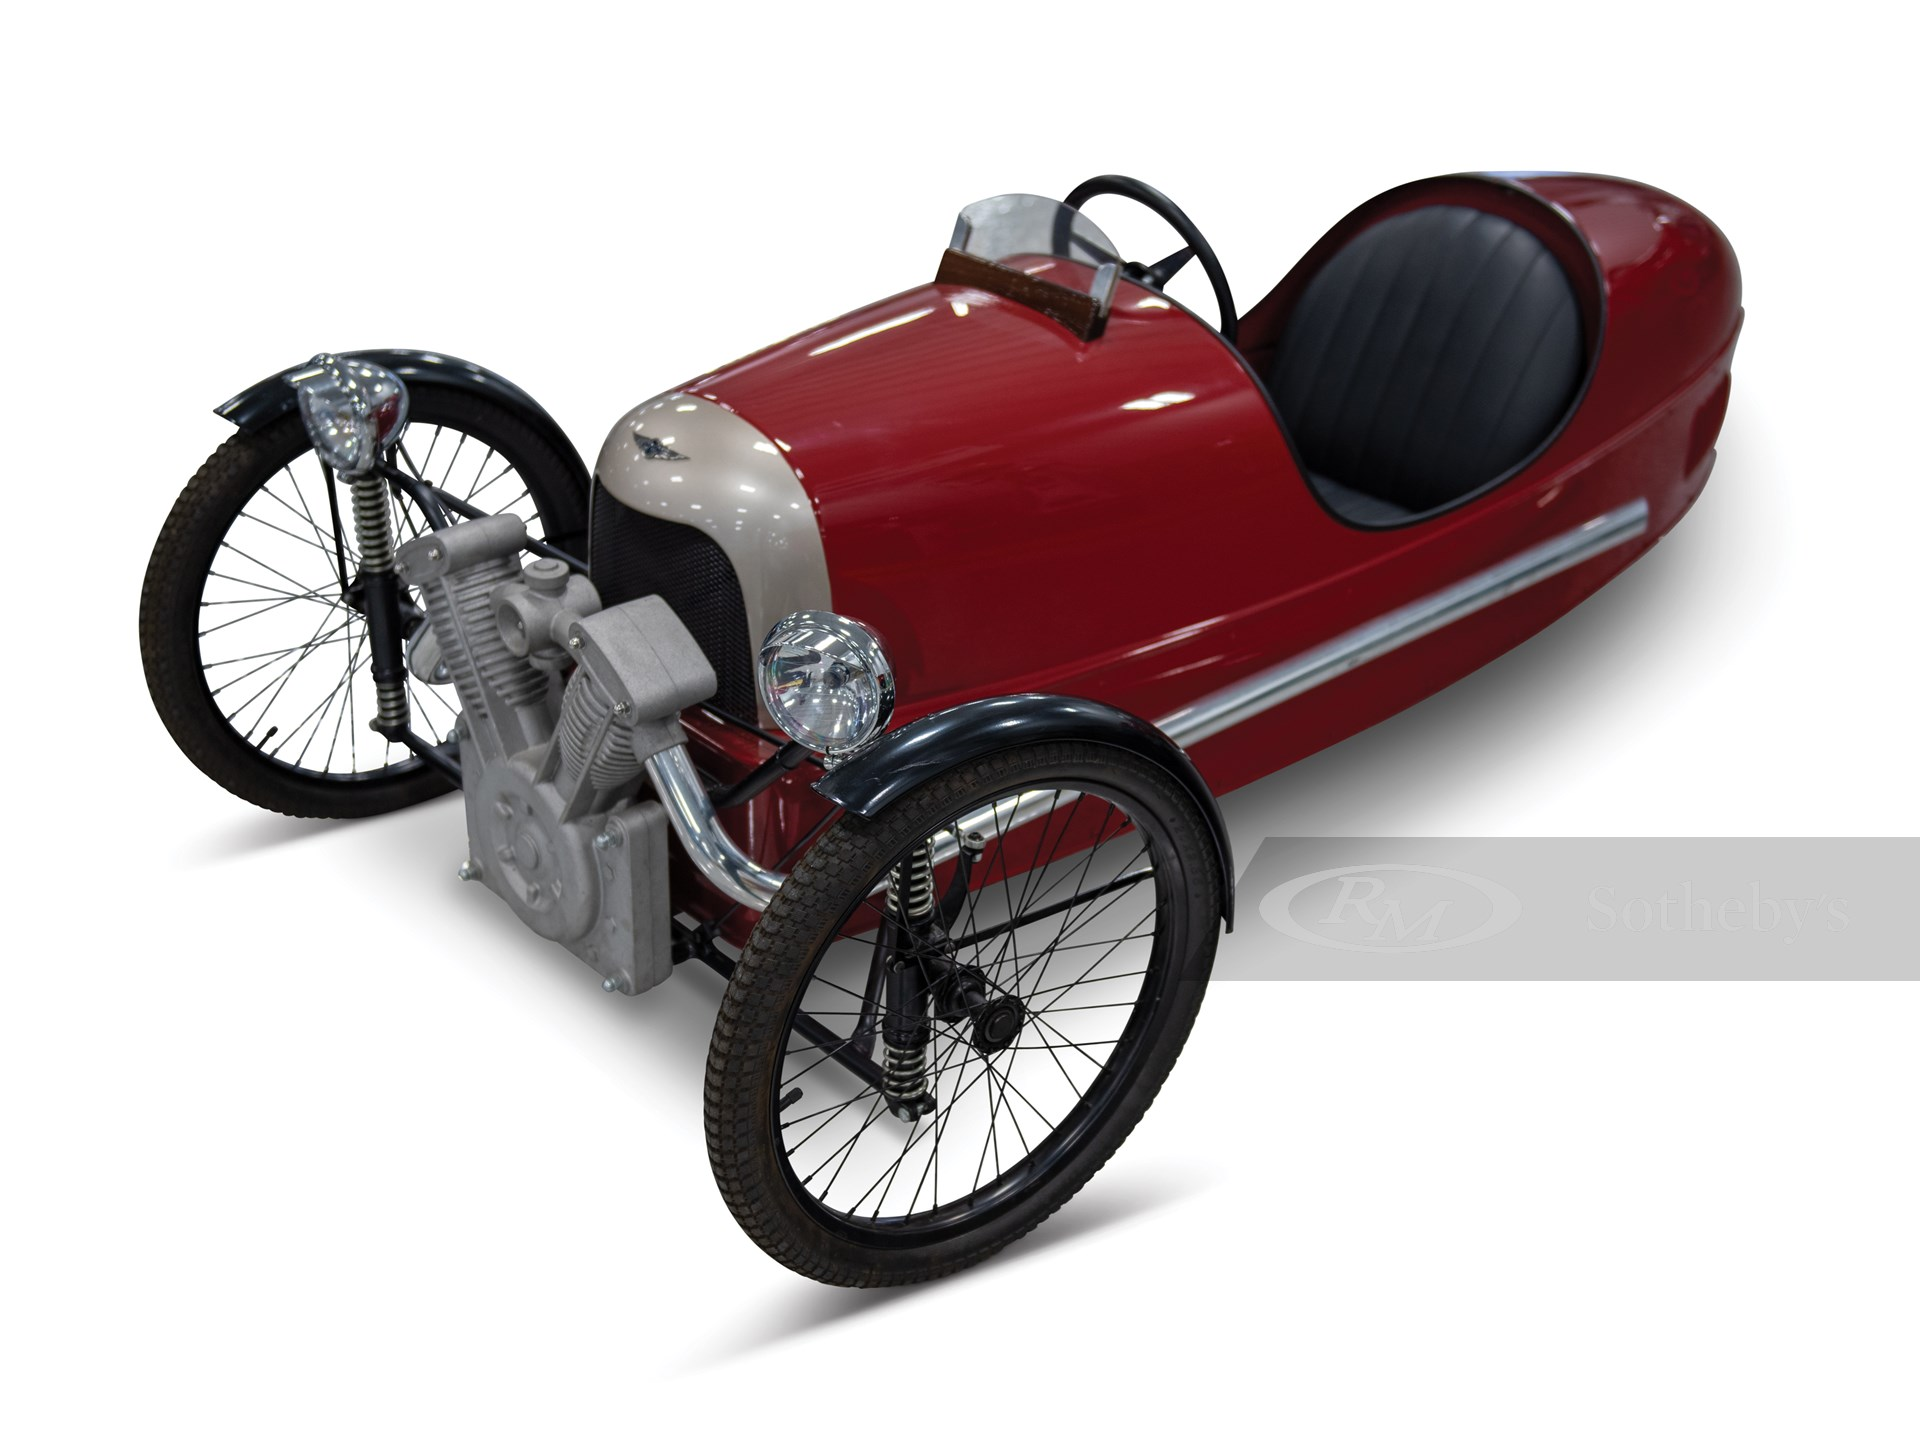 Morgan 3 Wheeler Pedal Car The Elkhart Collection Rm Sotheby S